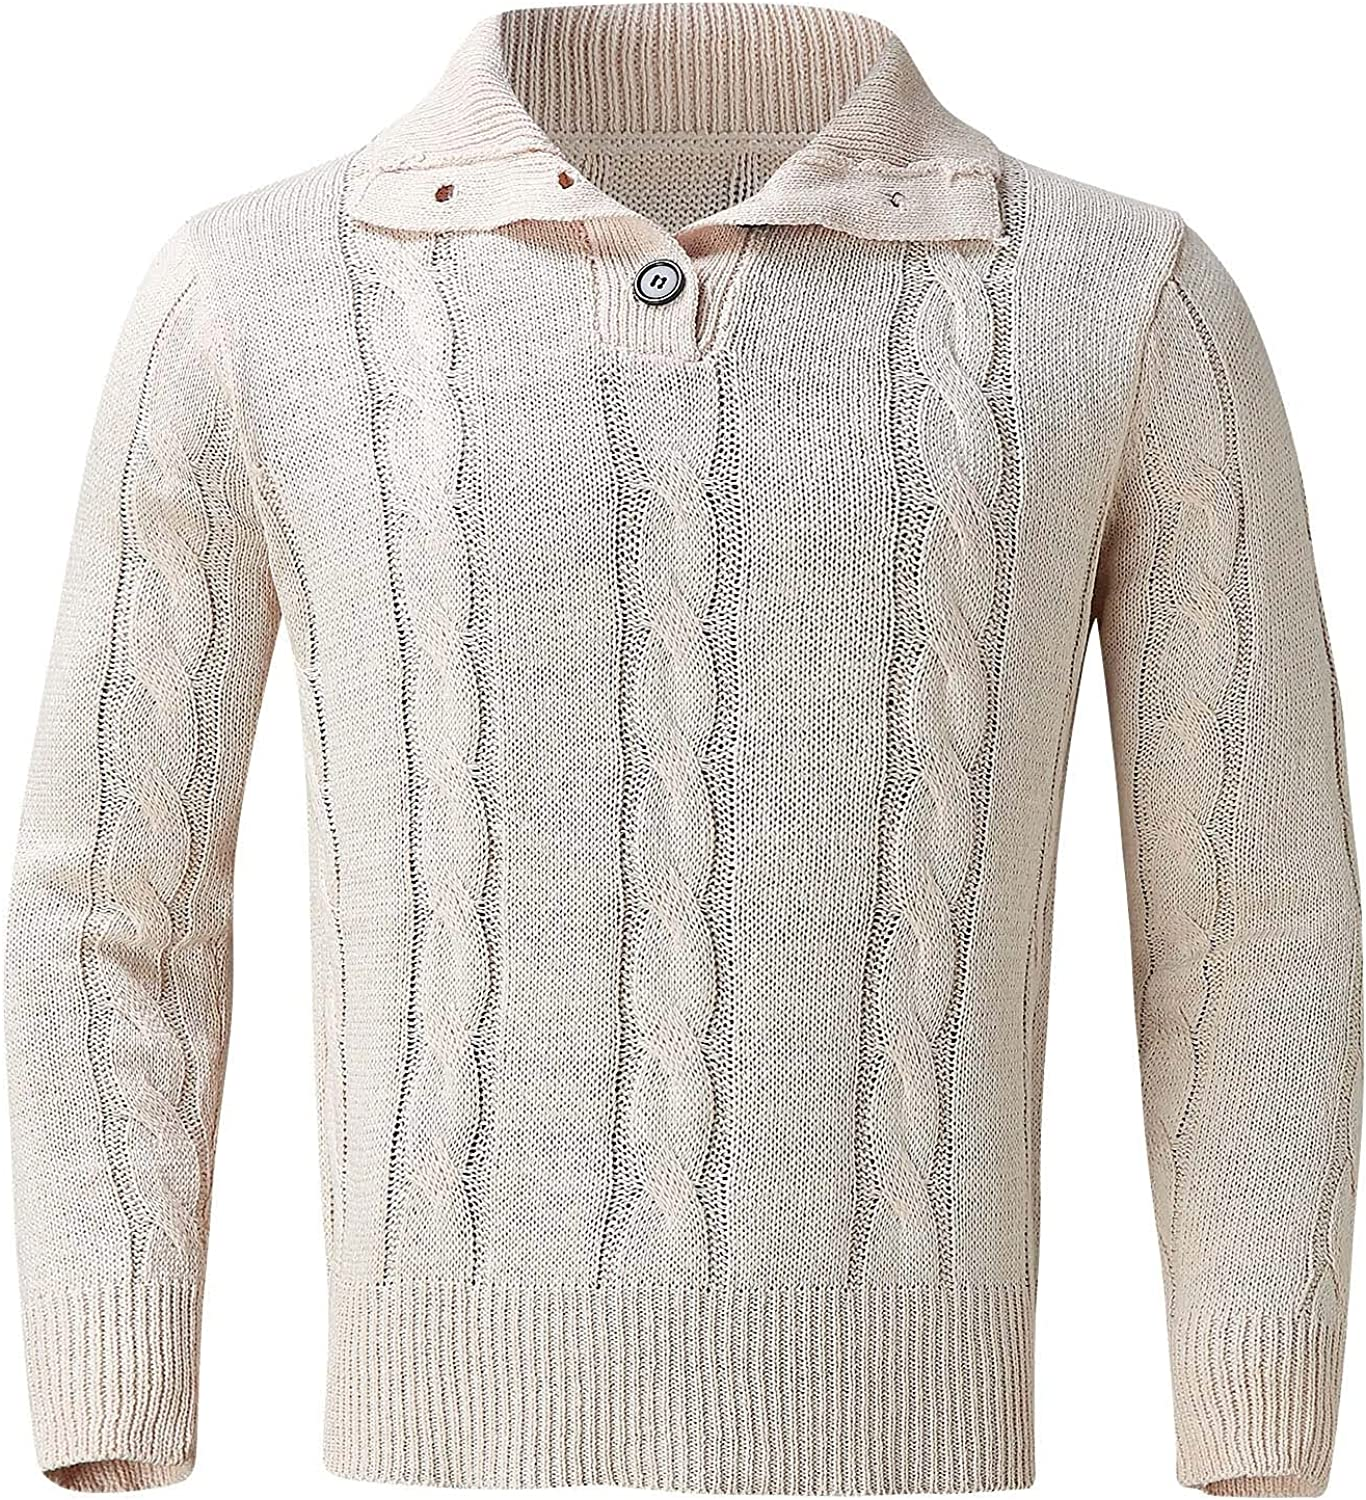 Huangse Men's Autumn Winter Cable Pullover Sweater Sold Color One Button Knitted Polo Pullover Ribbed Cuff Knitwear Tops